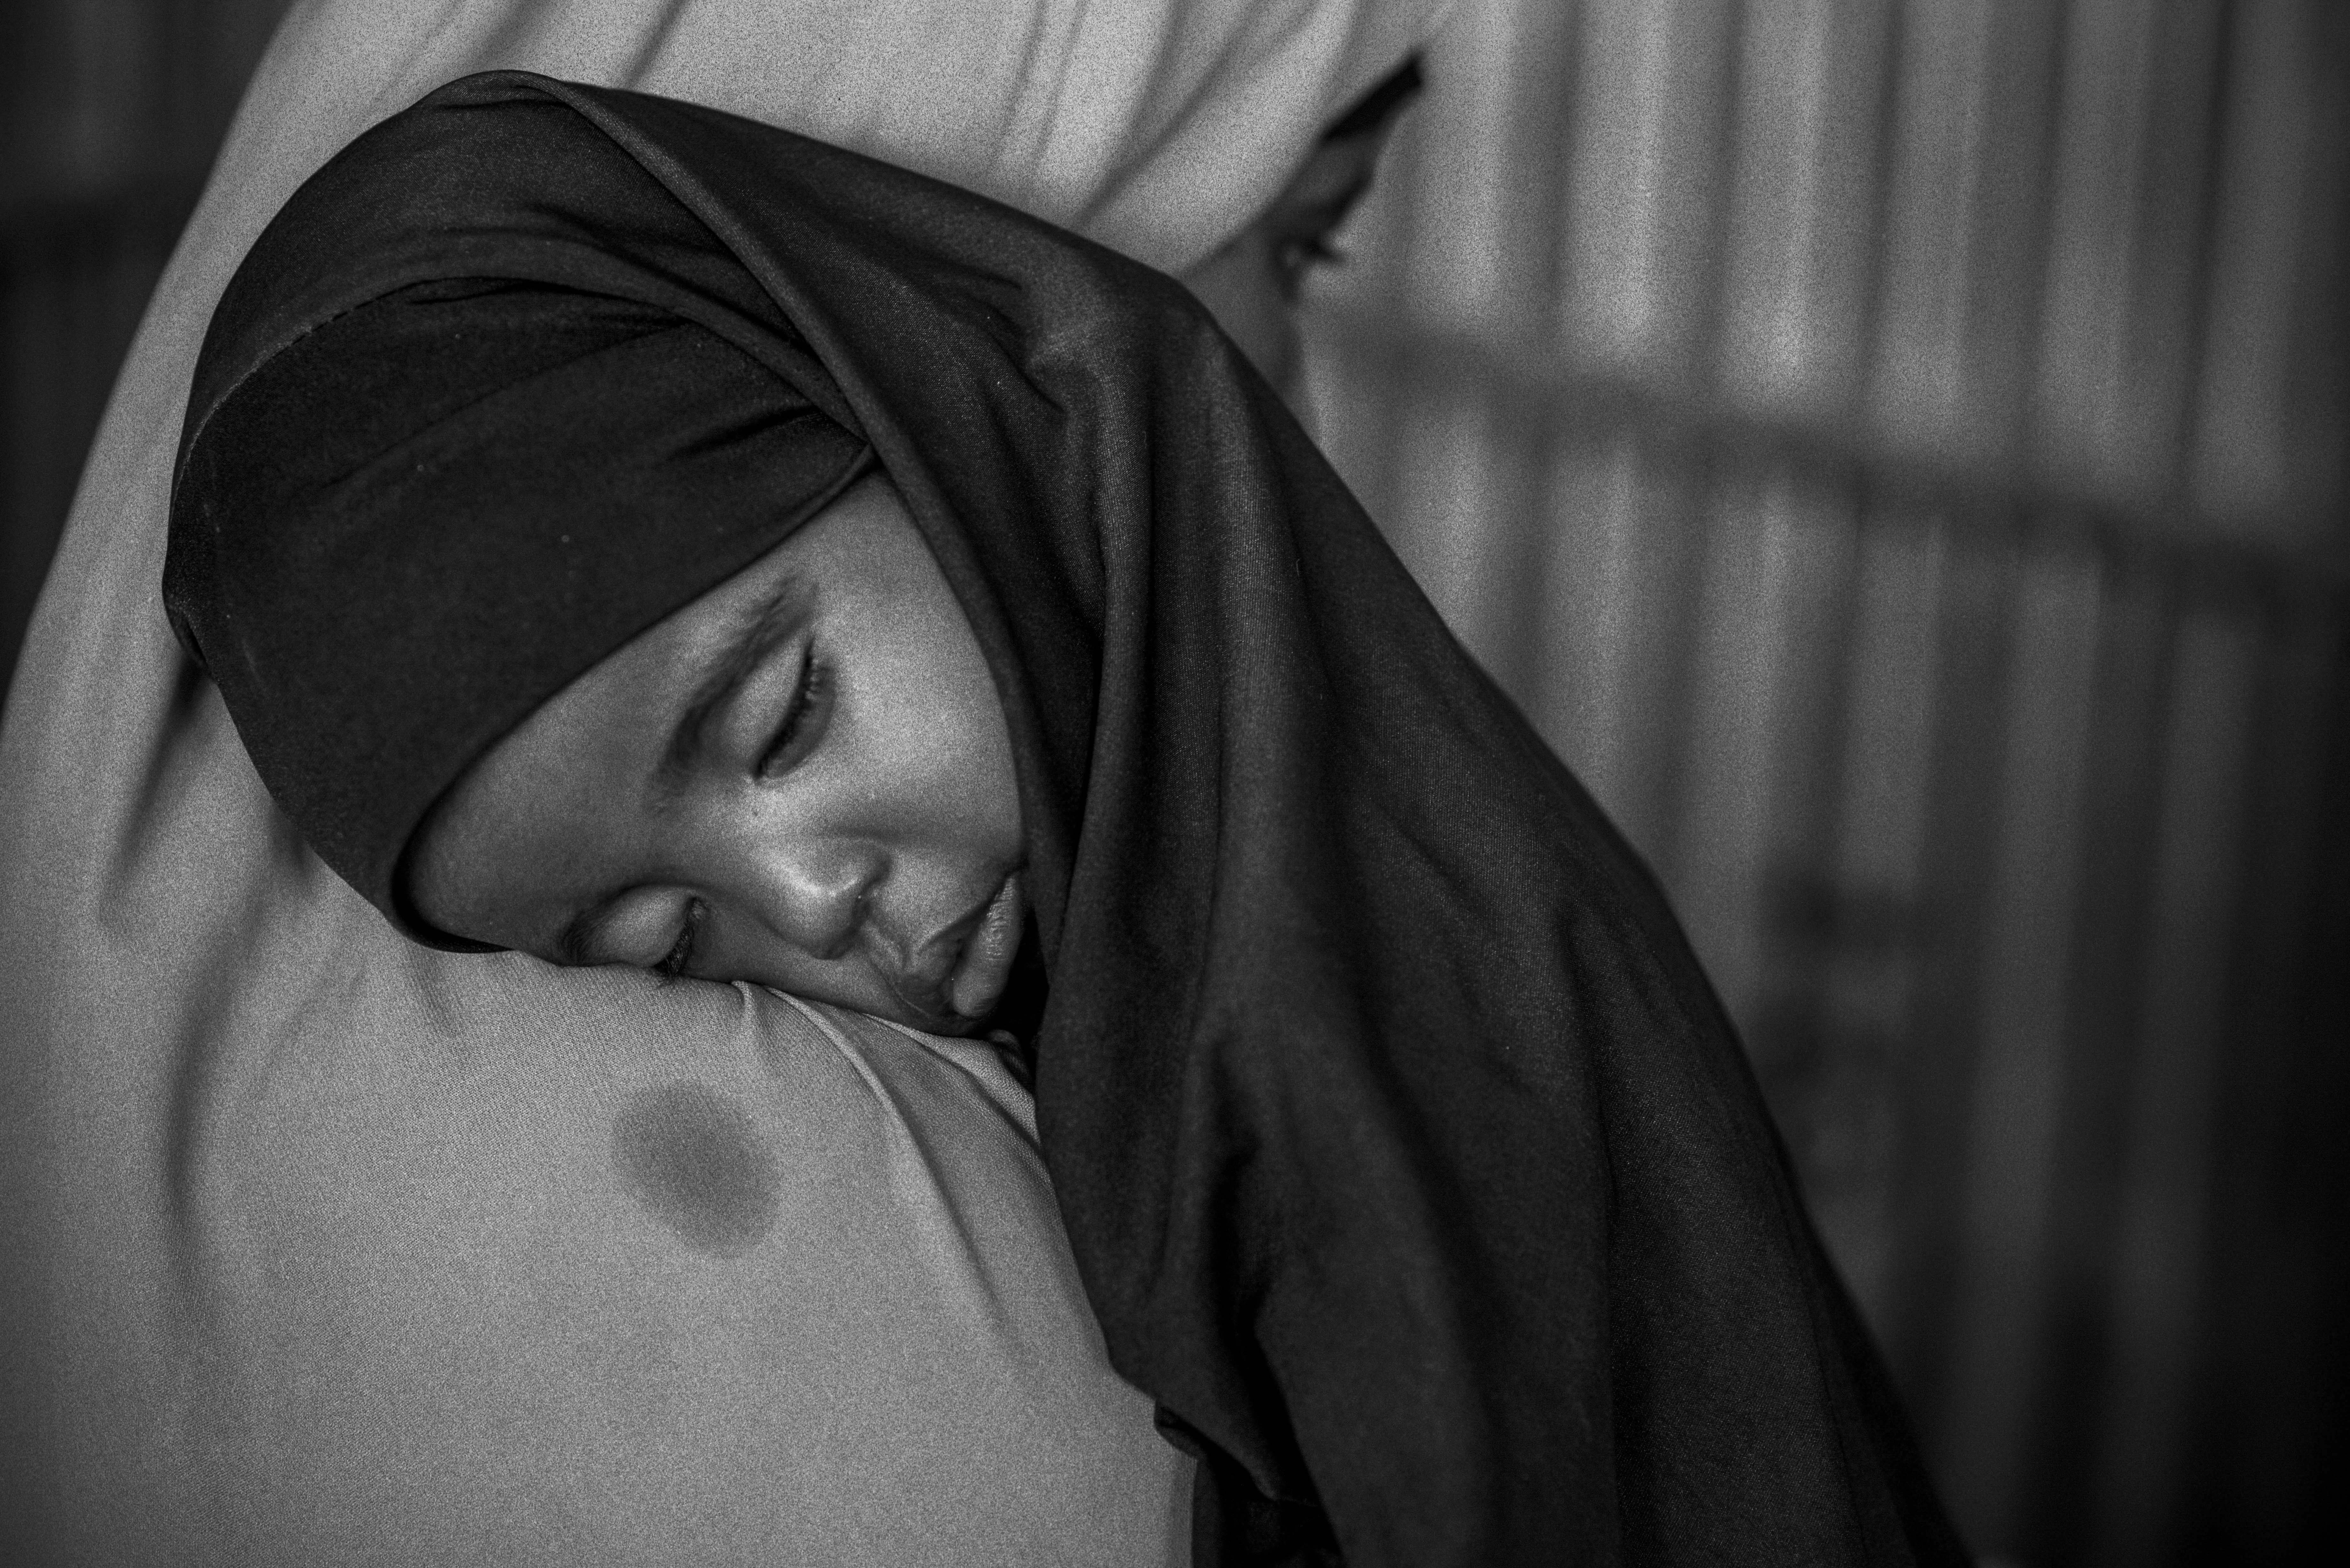 A young girl visits a UNICEF walk-in clinic with her mother in Somaliland. Photo by Sebastian Rich for UNICEF